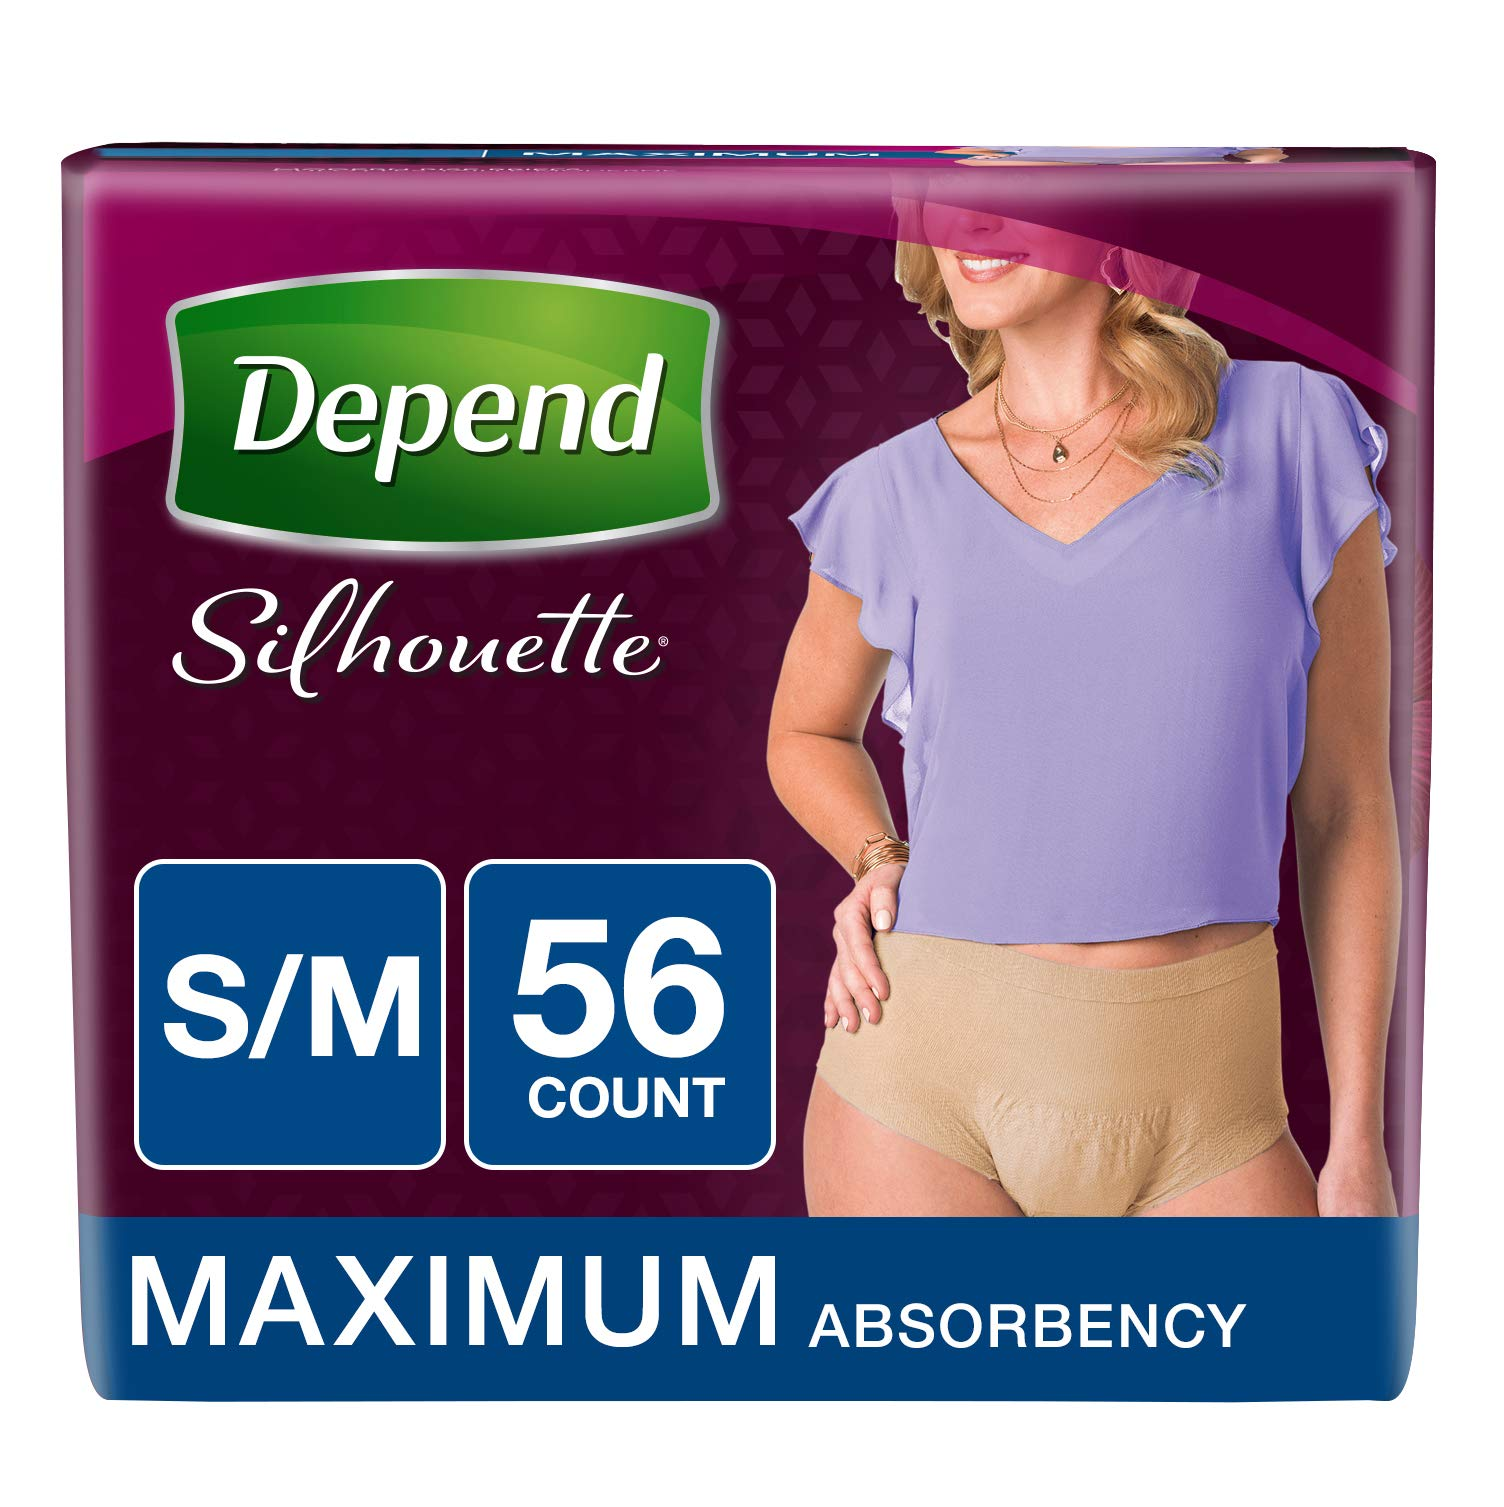 Depend Silhouette Incontinence Underwear for Women, Maximum Absorbency, S/M, Beige, 56 Count by Depend